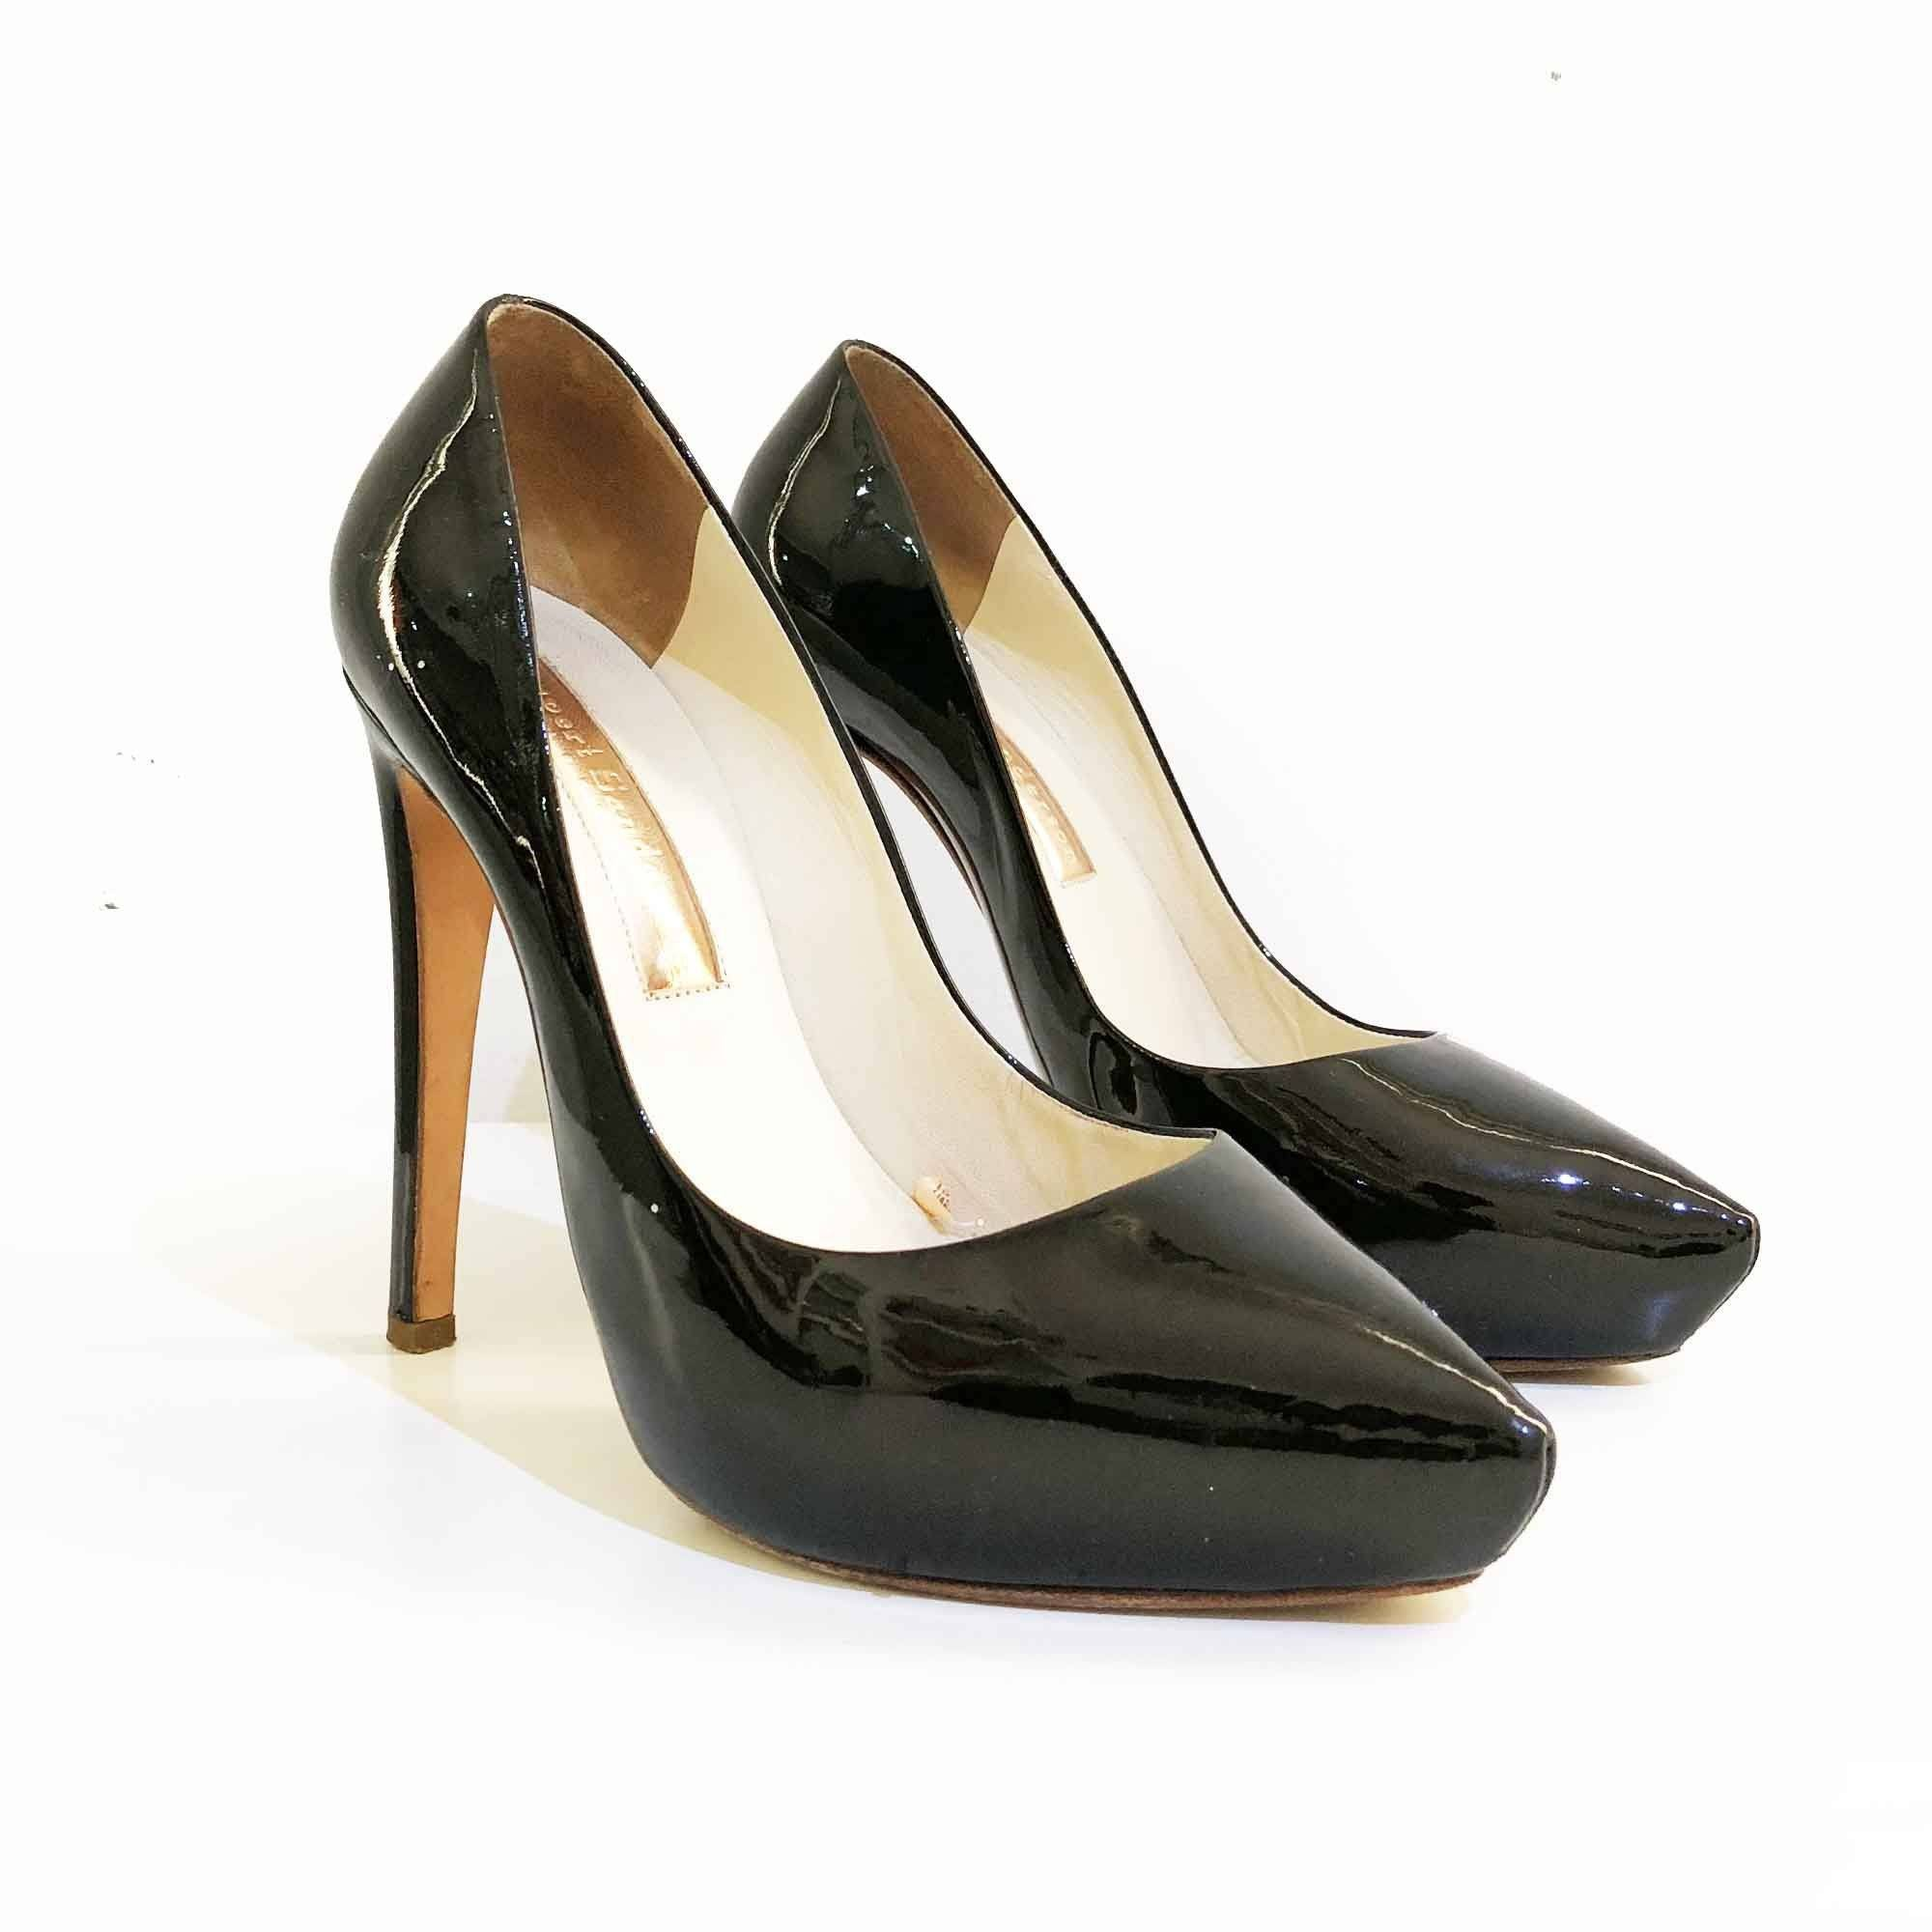 Rupert Sanderson Black Patent Leather Split Toe Pumps